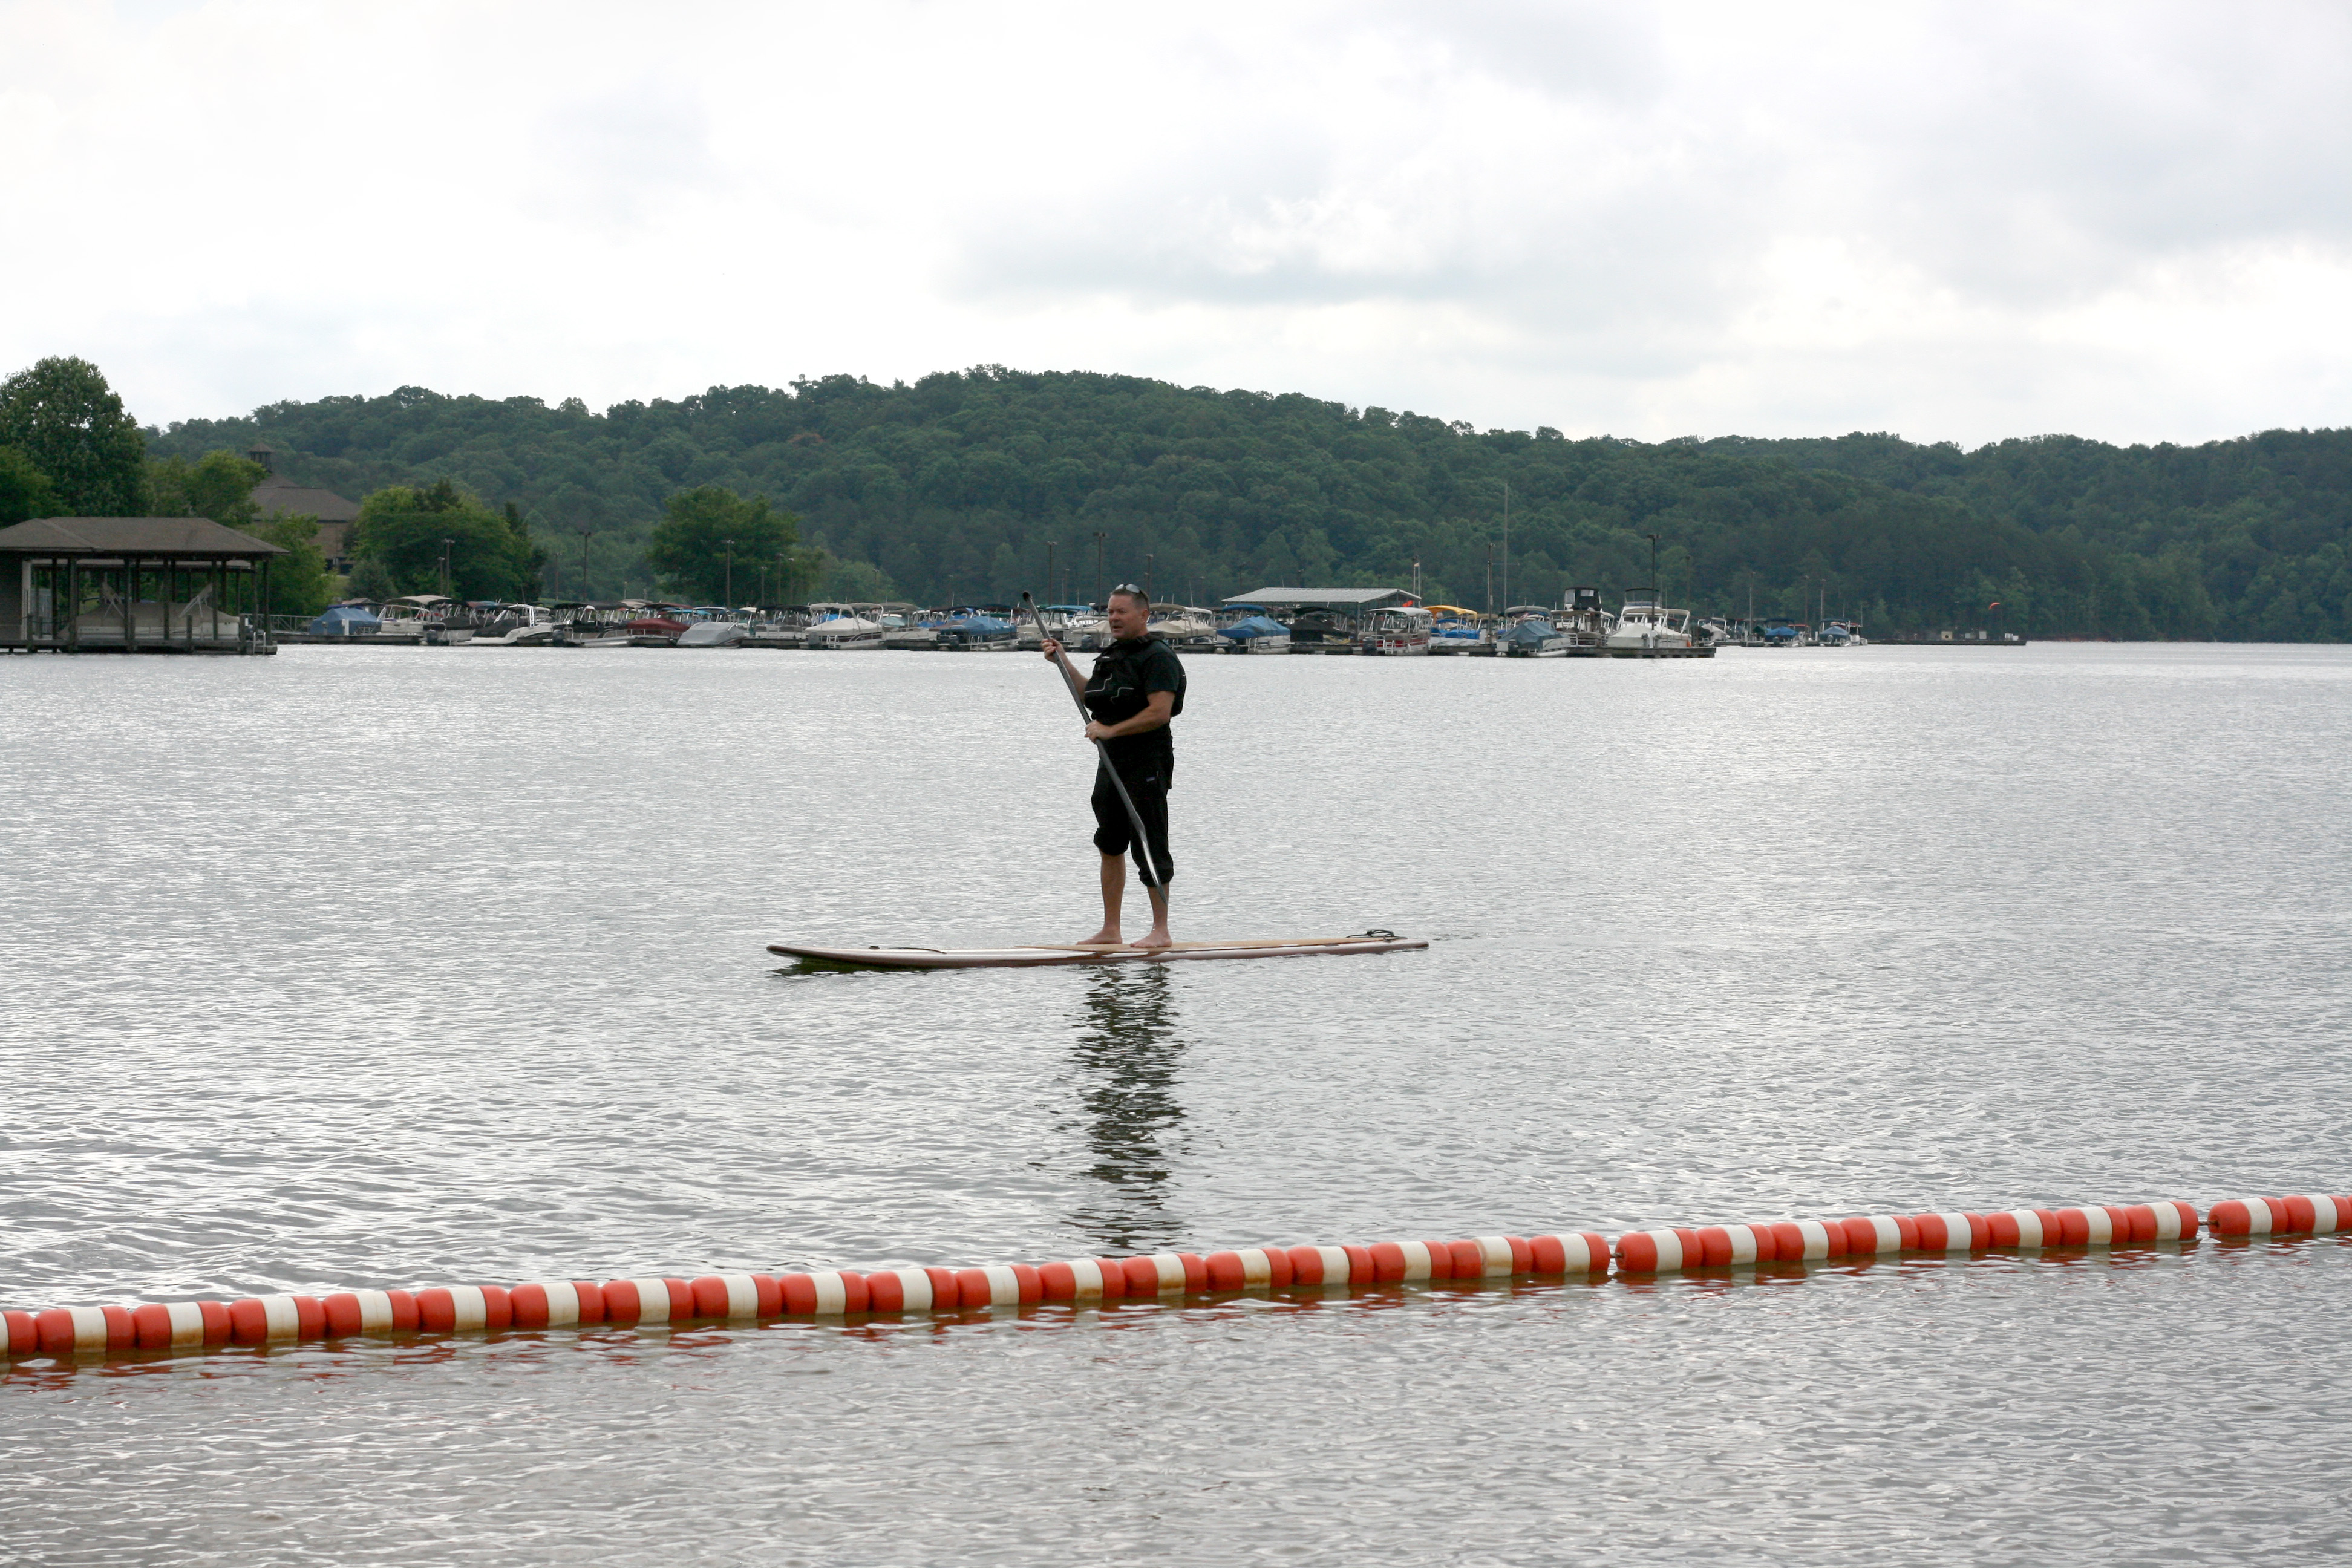 Villagers Giving Paddle Boarding a Try 8